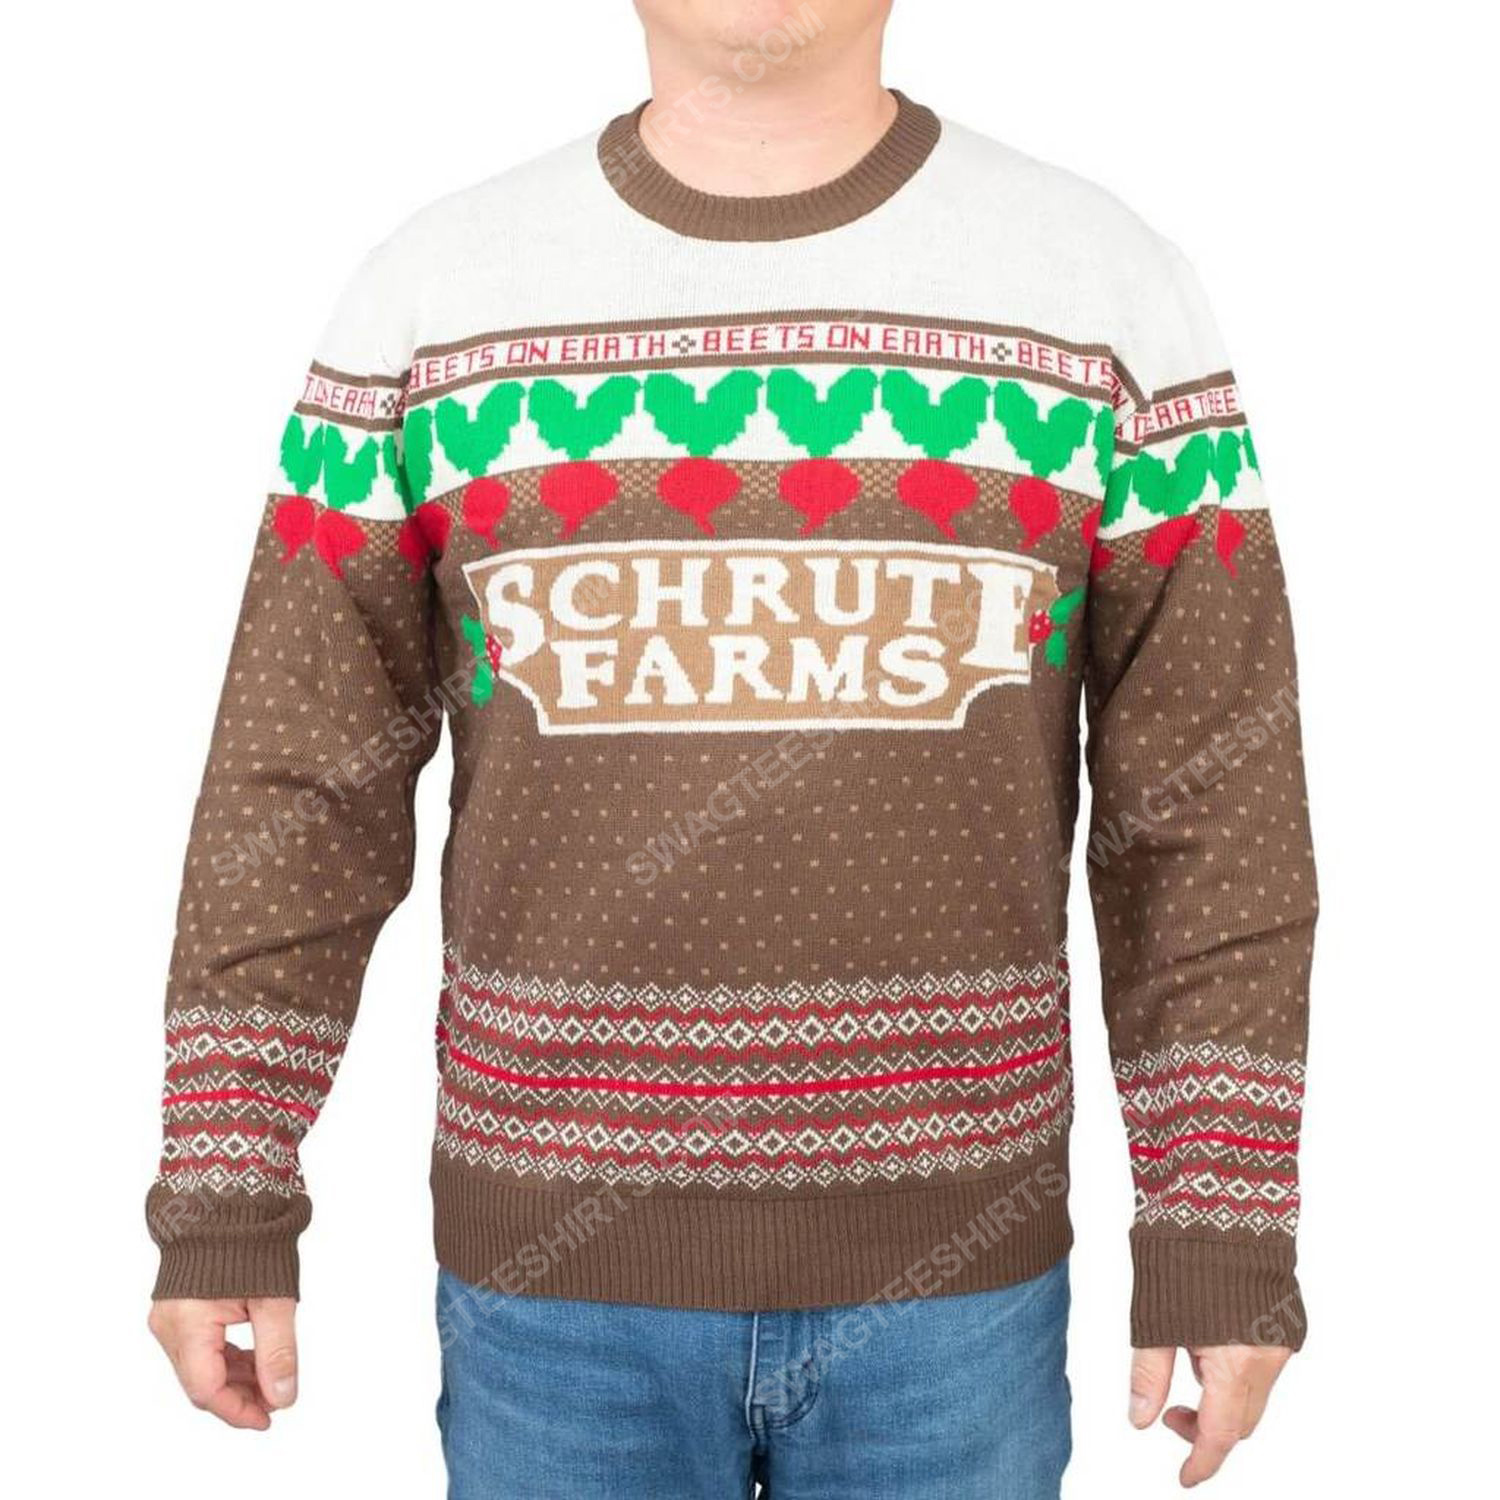 The office dwight schrute farms beets full print ugly christmas sweater 2